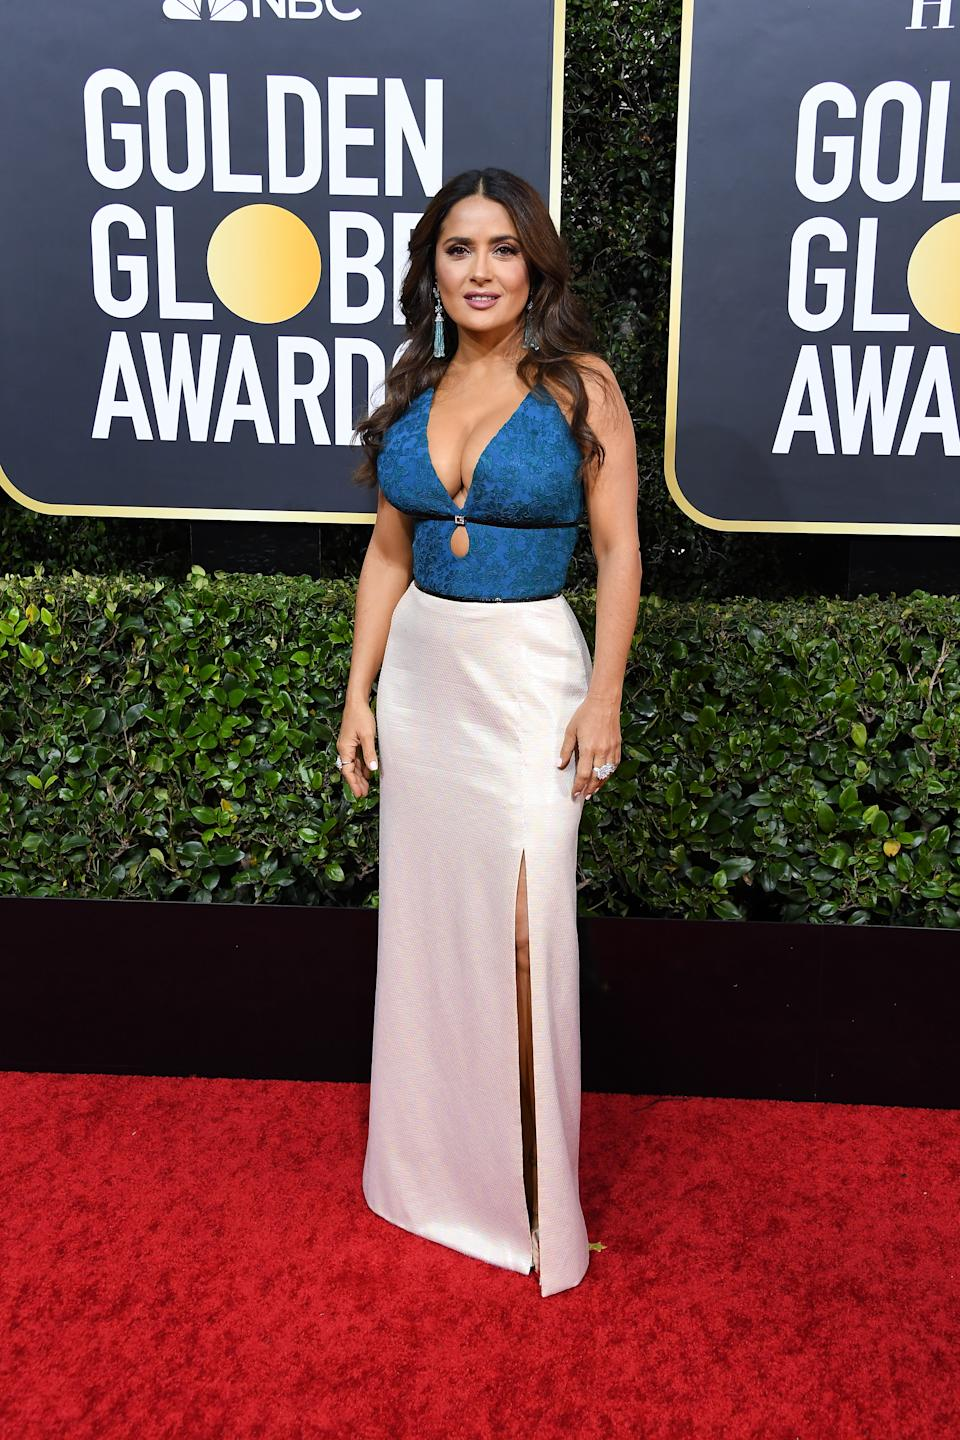 Hayek opted for a white and blue Gucci gown with cut-out details to serve as a presenter at this year's Golden Globes. (Photo by Steve Granitz/WireImage)